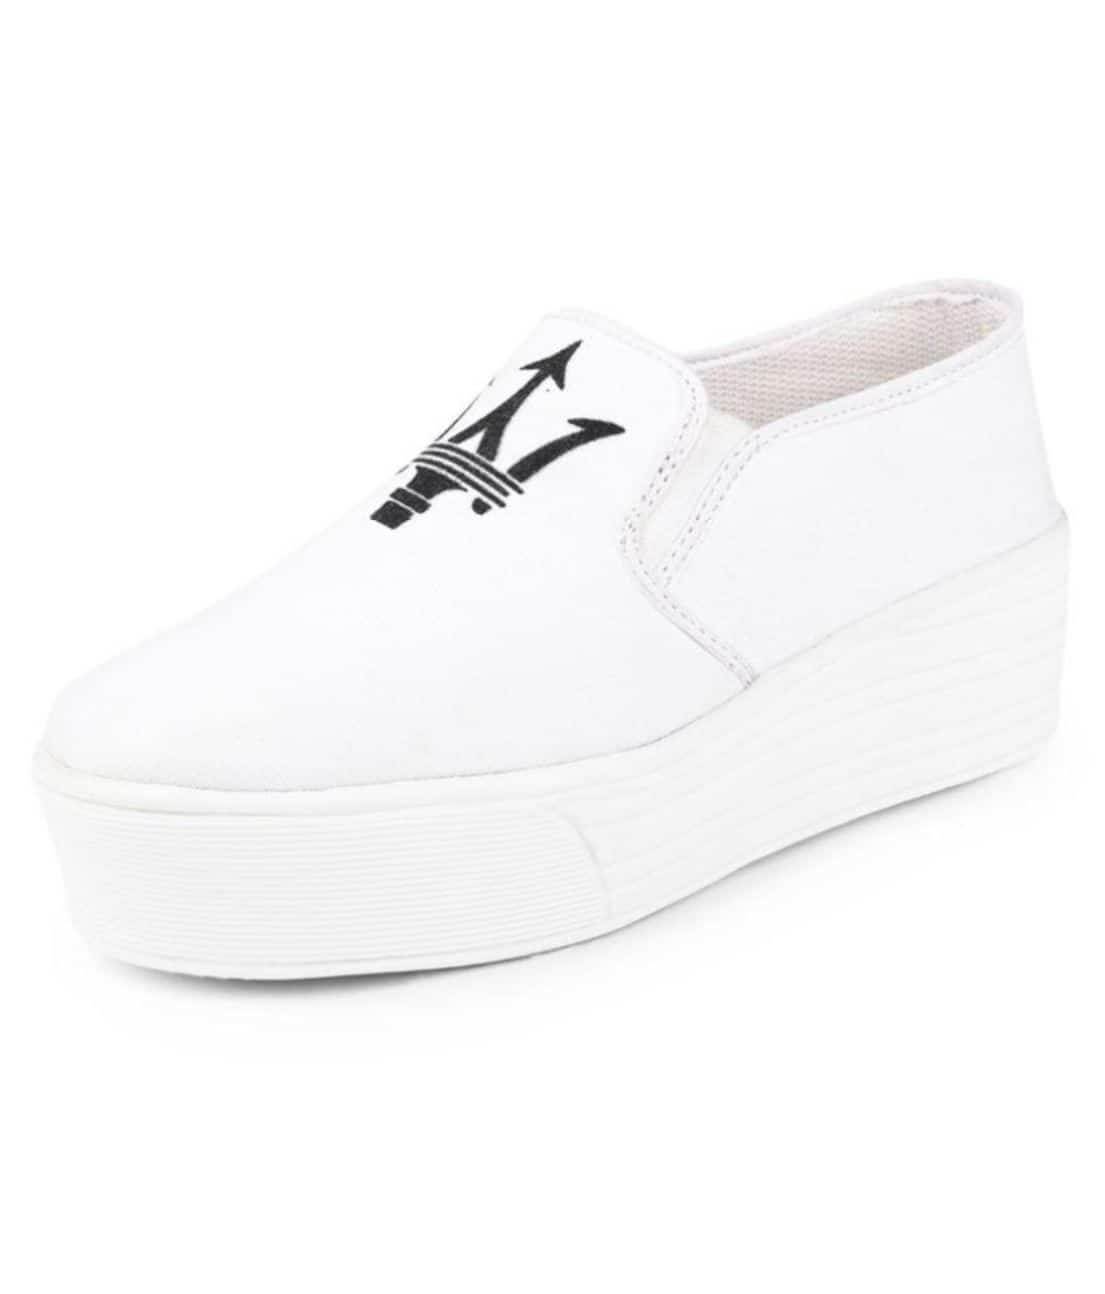 Women's Sneaker Shoes (White) ₹498 Occasion : NA Heels Height : 1 inches Material : Canvas Ideal For : Women  #sneakers #women #womenshoes #winsant #roposo #onlineshopping